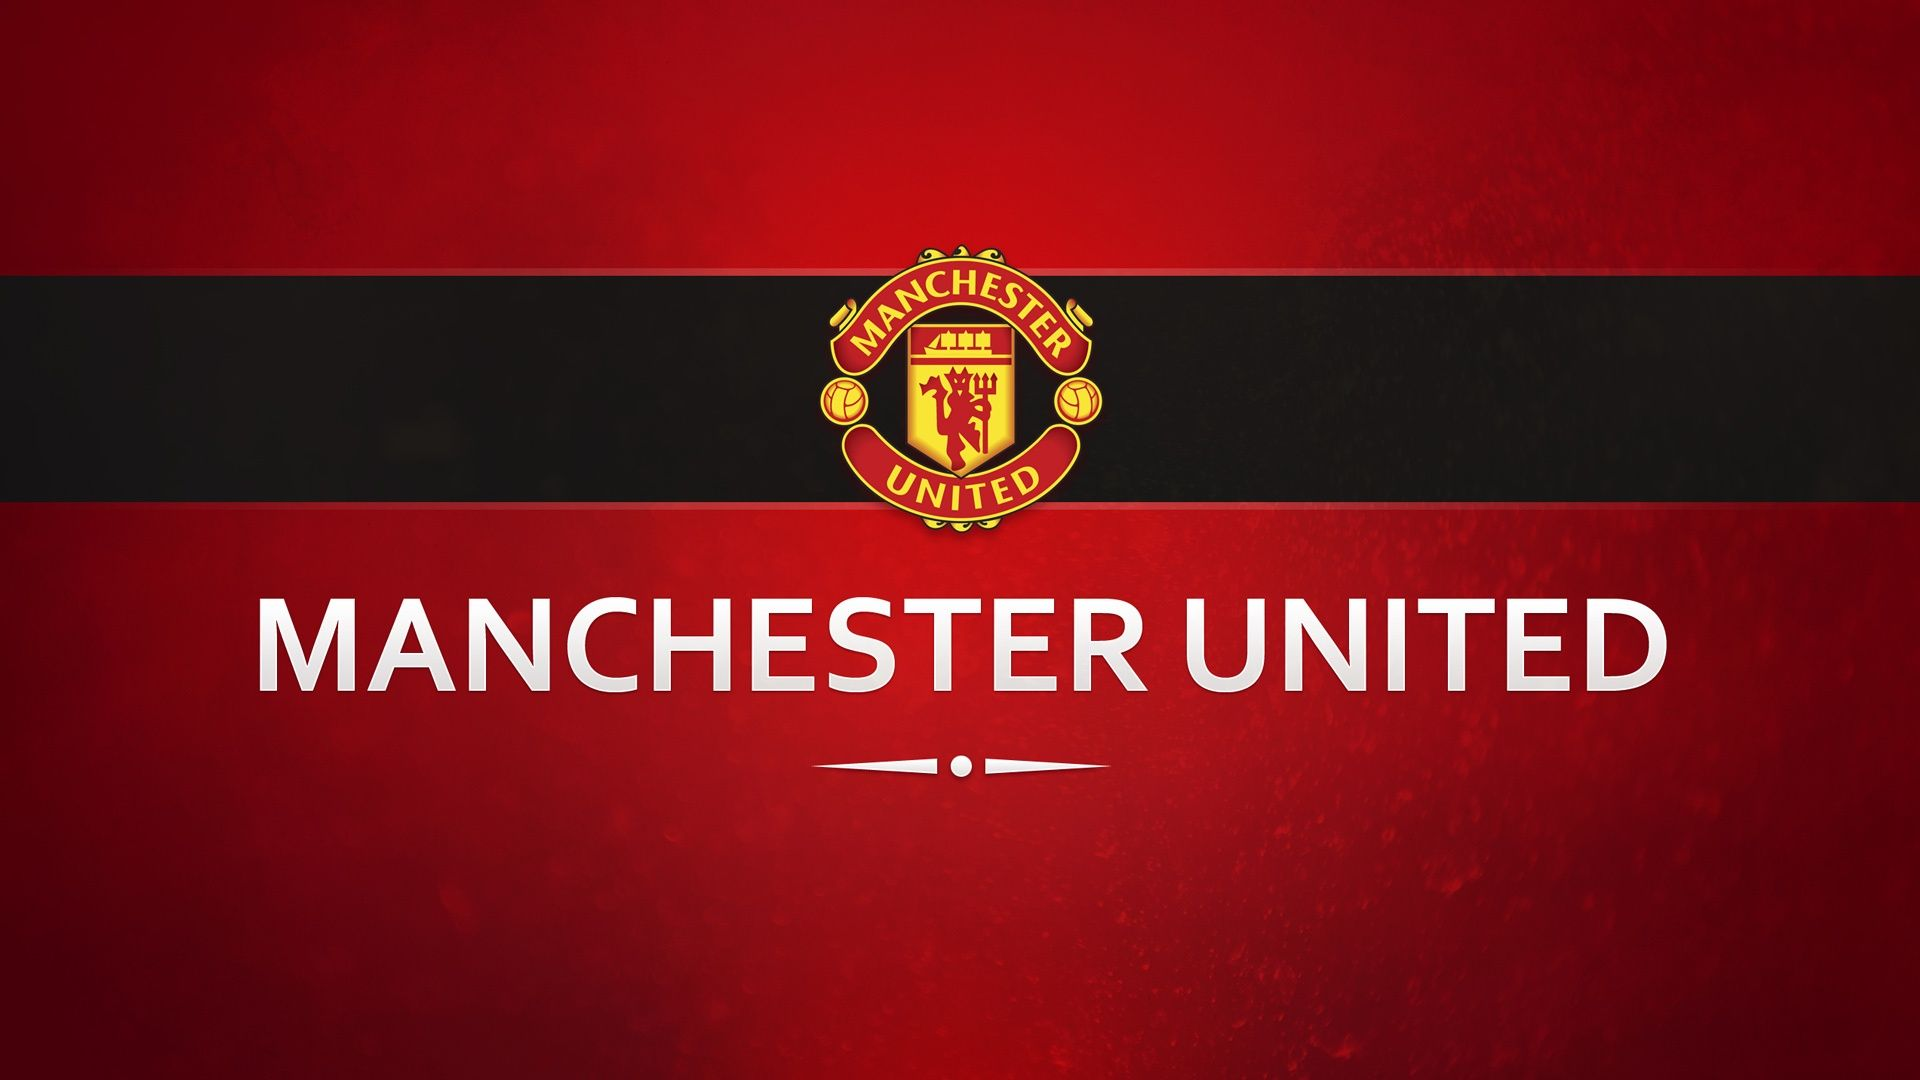 Manchester United Wallpaper Hd Manchester United Wallpaper Manchester United Logo Manchester United Images